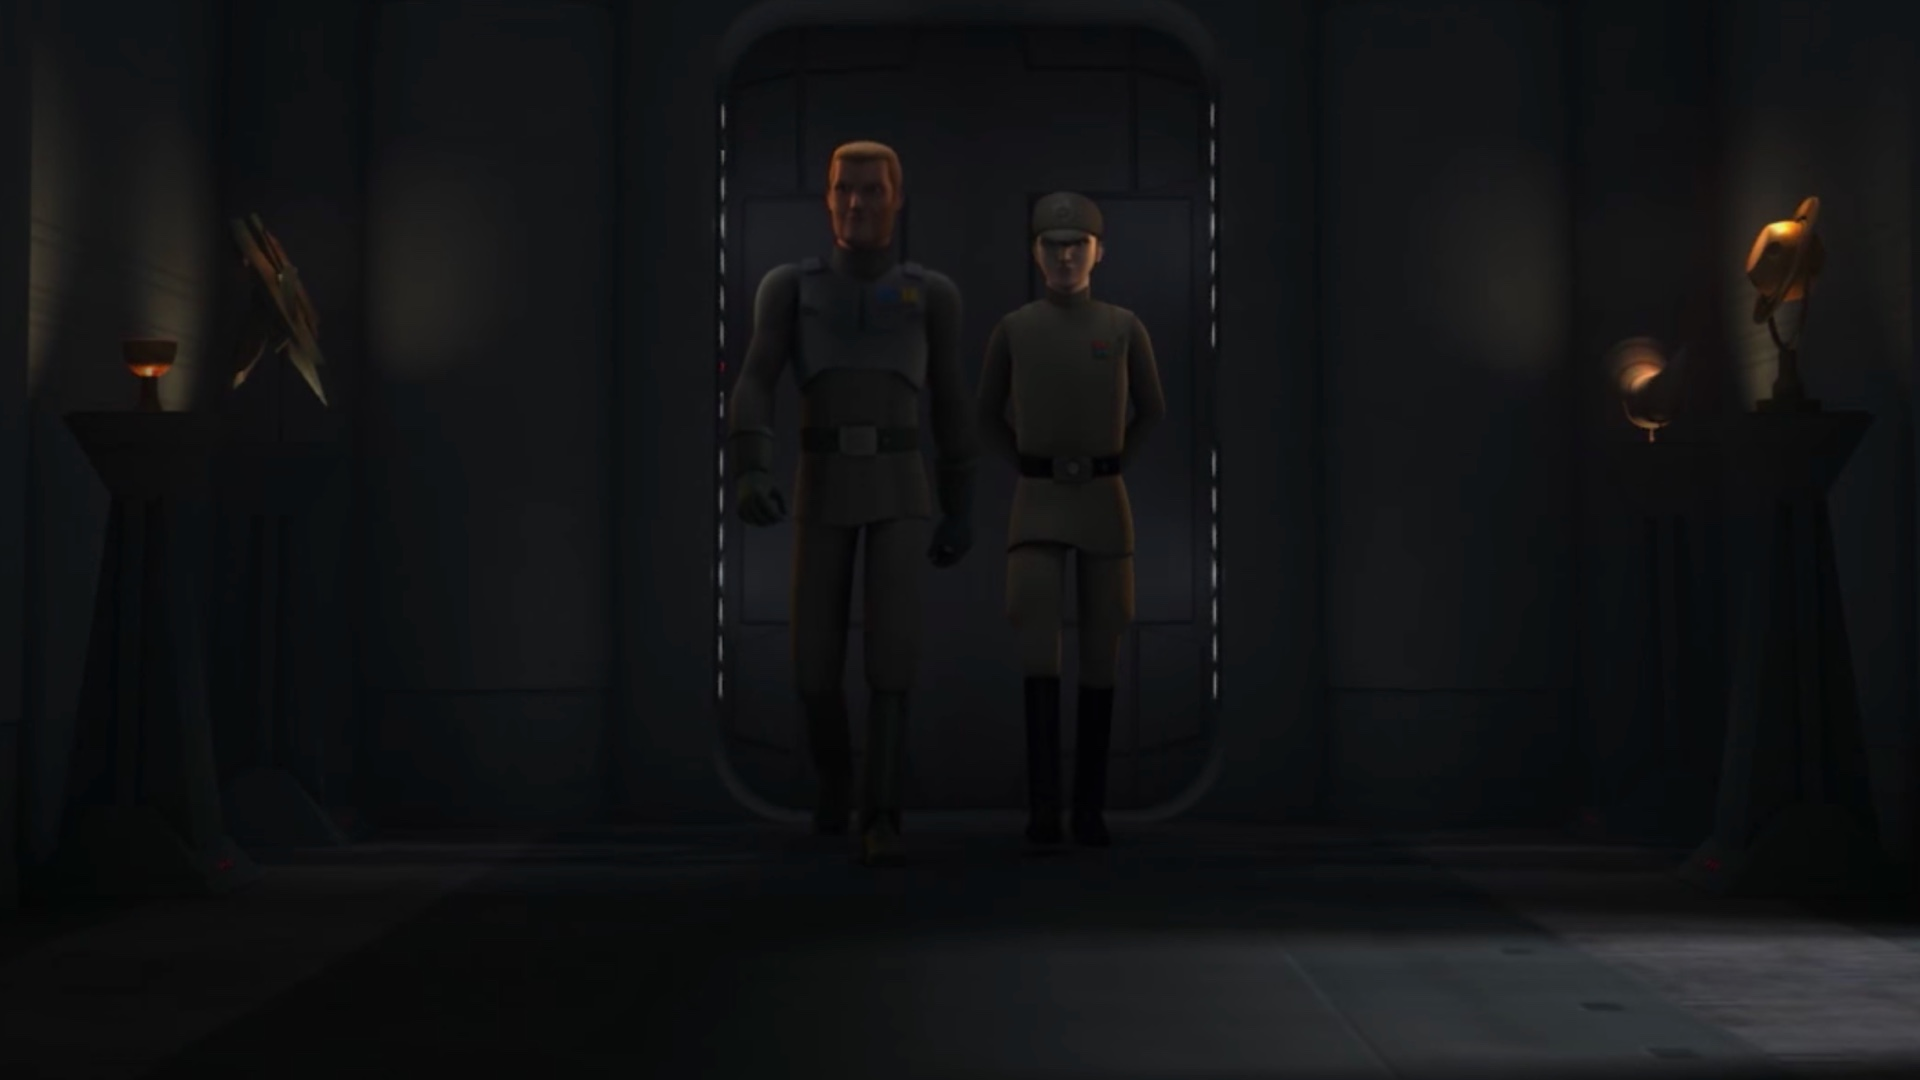 Cool Star Wars Rebels Easter Eggs For Indiana Jones Revenge Of The Sith And More Geektyrant